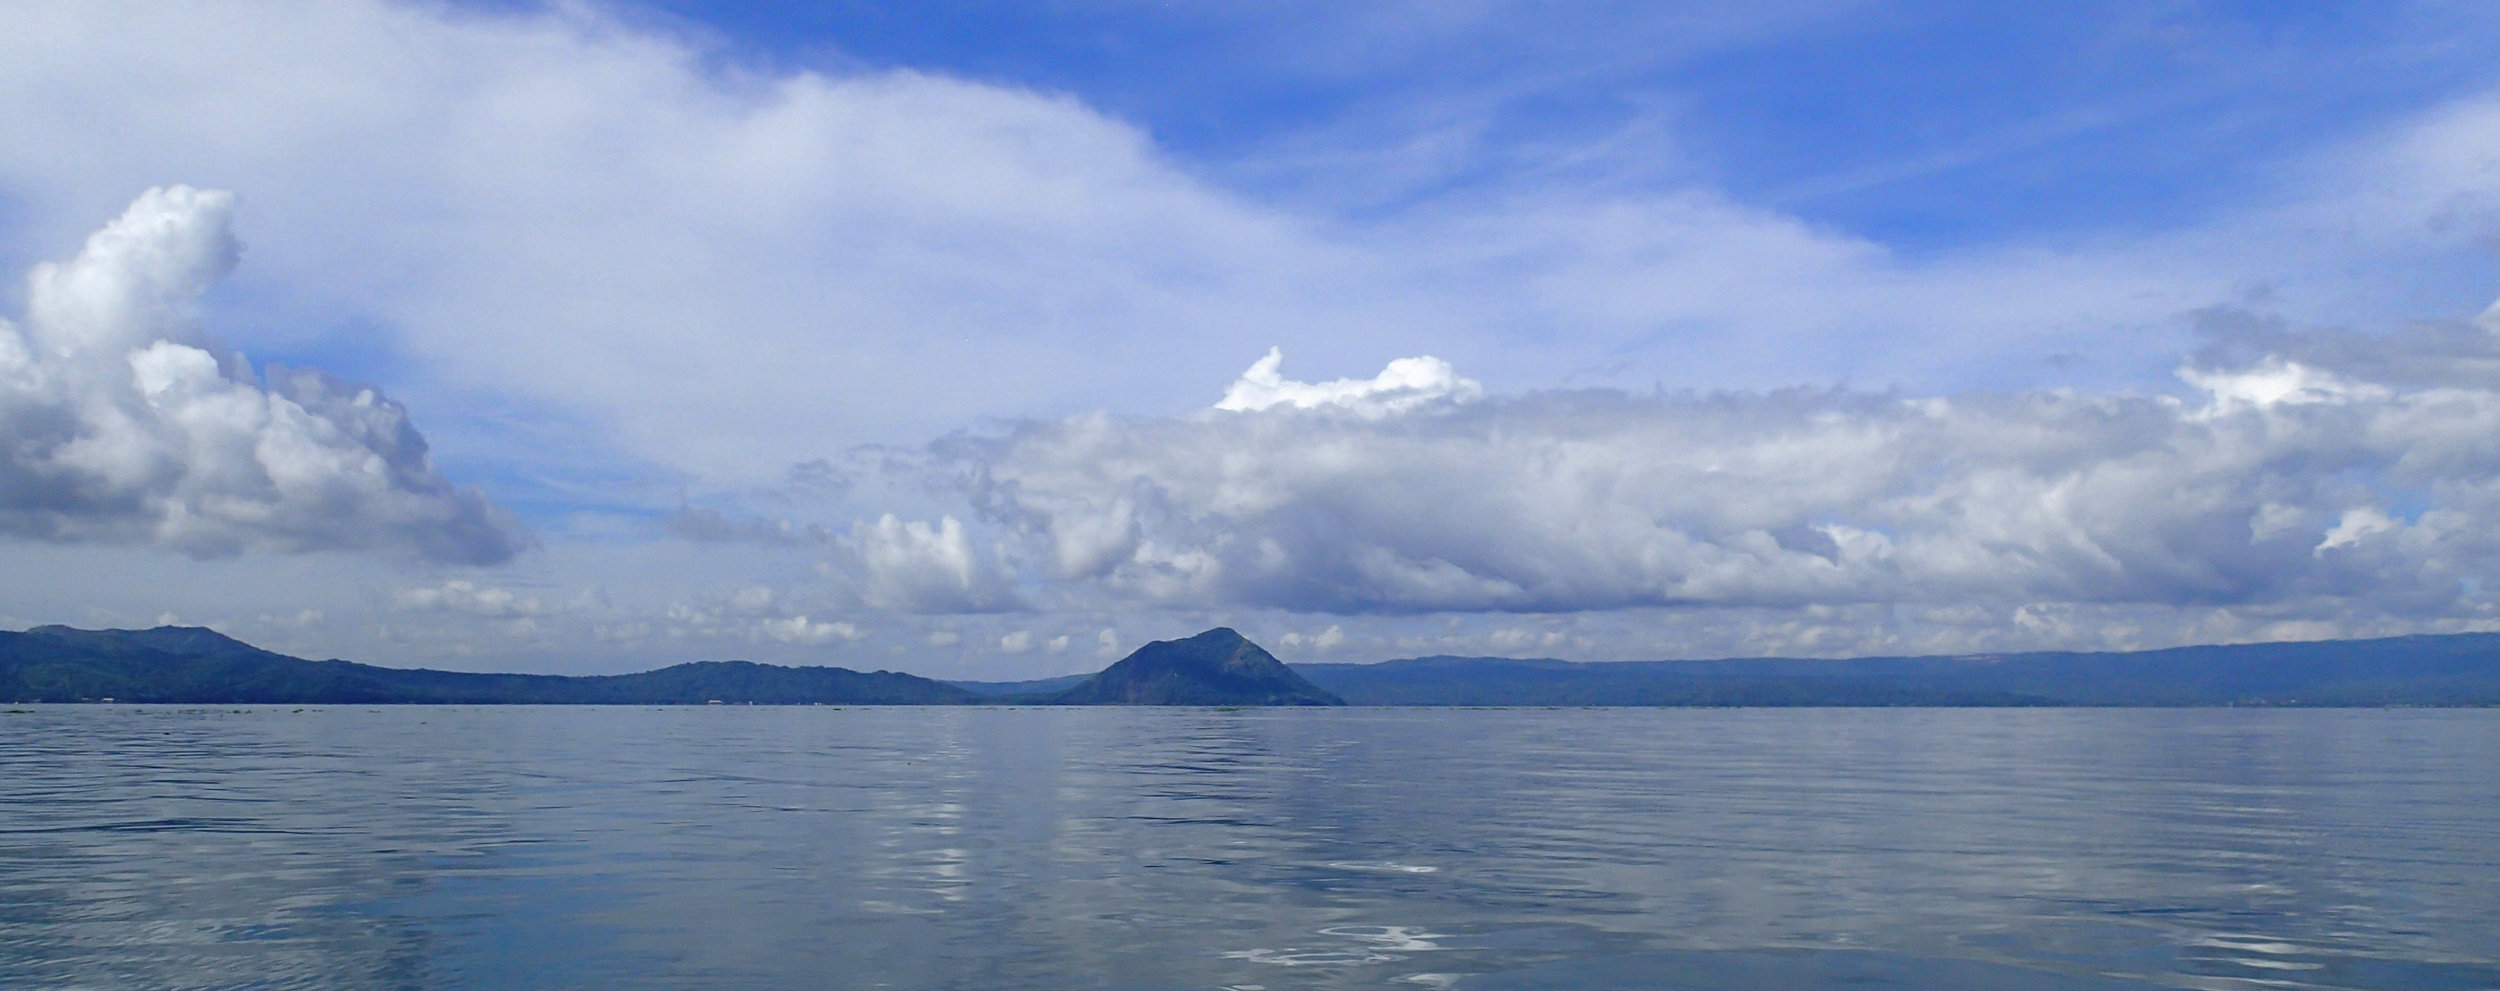 view from the boat.jpg